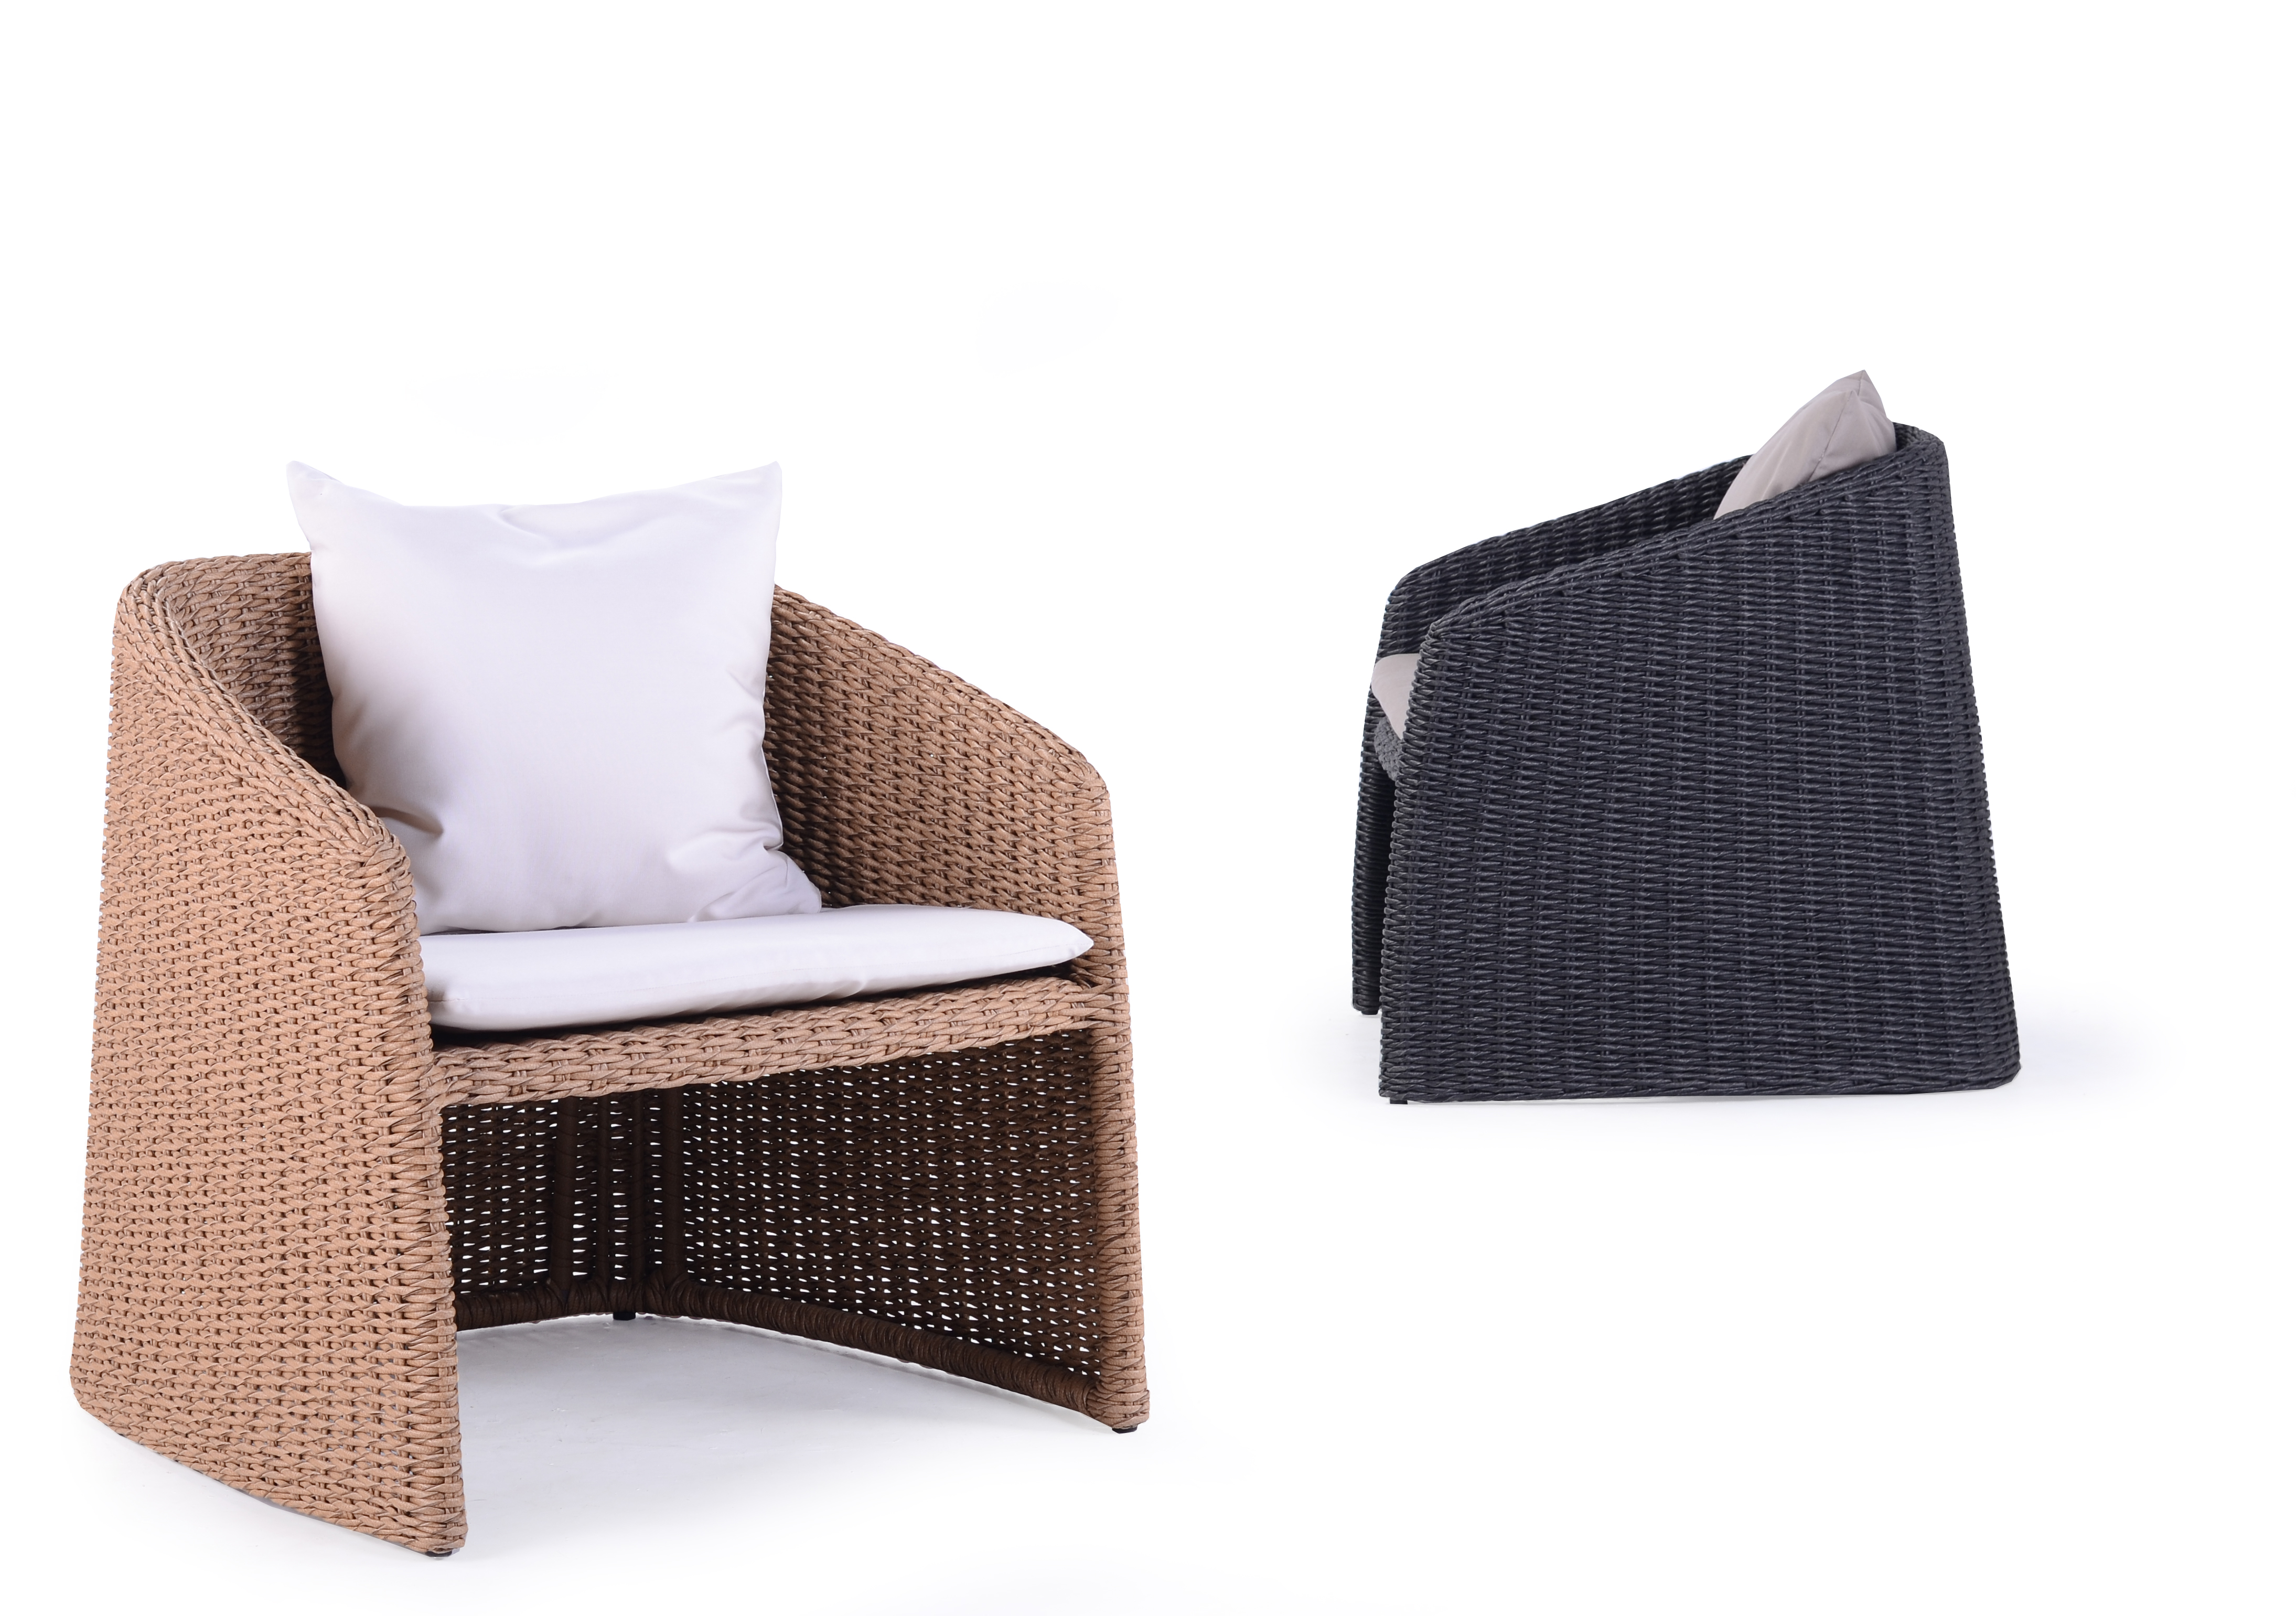 Elano Dining Chair Stellar - Couture Outdoor